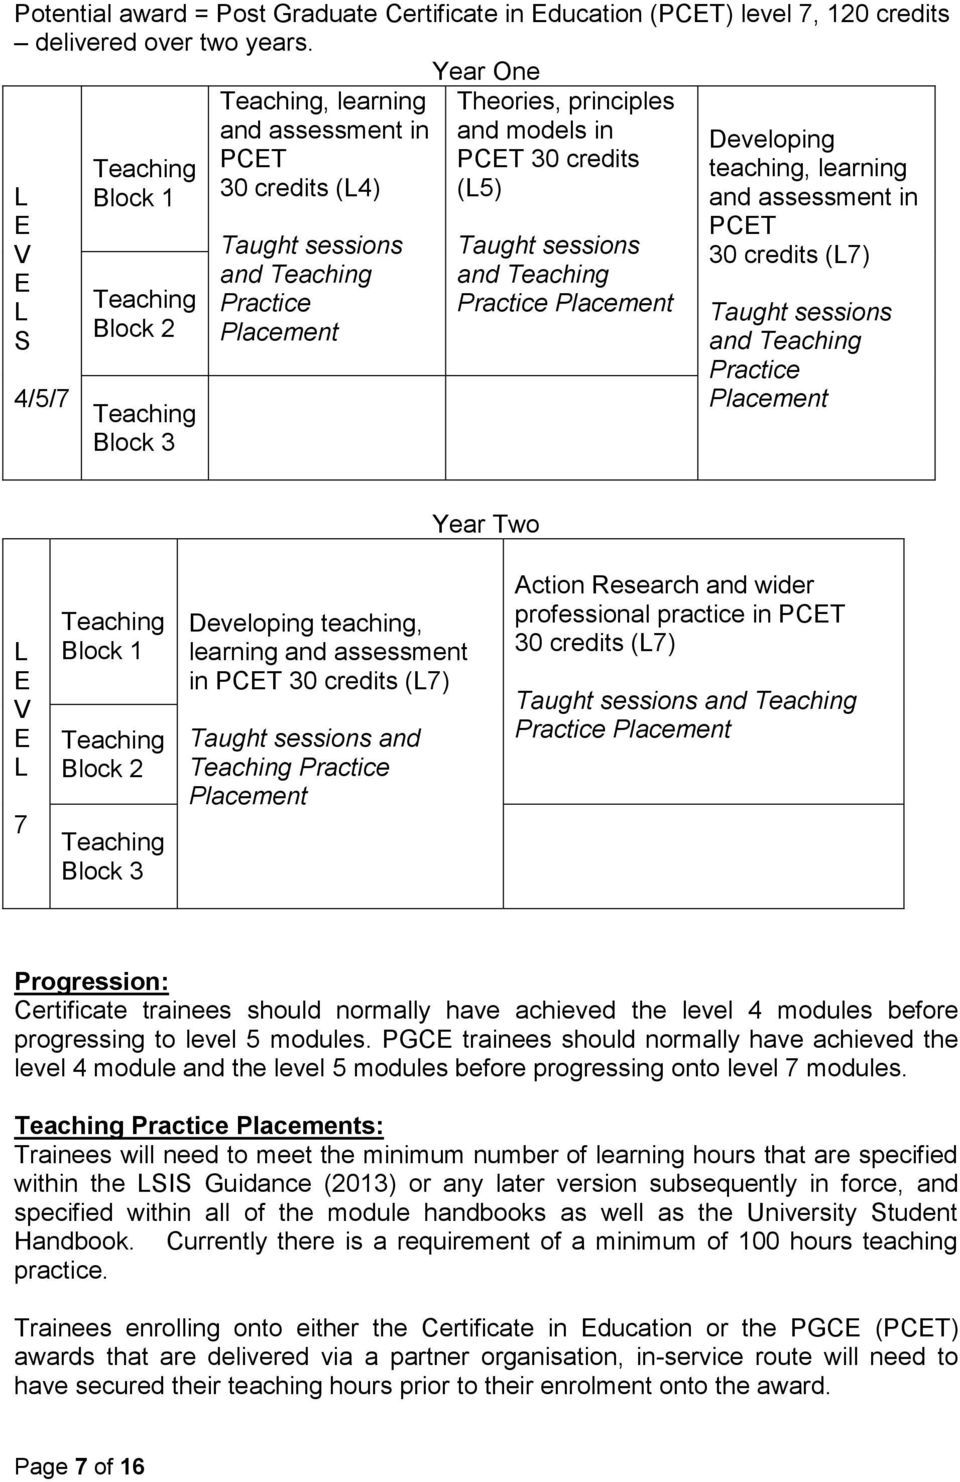 Taught sessions and Practice Placement Developing teaching, learning and assessment in PCET 30 credits (L7) Taught sessions and Practice Placement Year Two L E V E L 7 Block 1 Block 2 Block 3